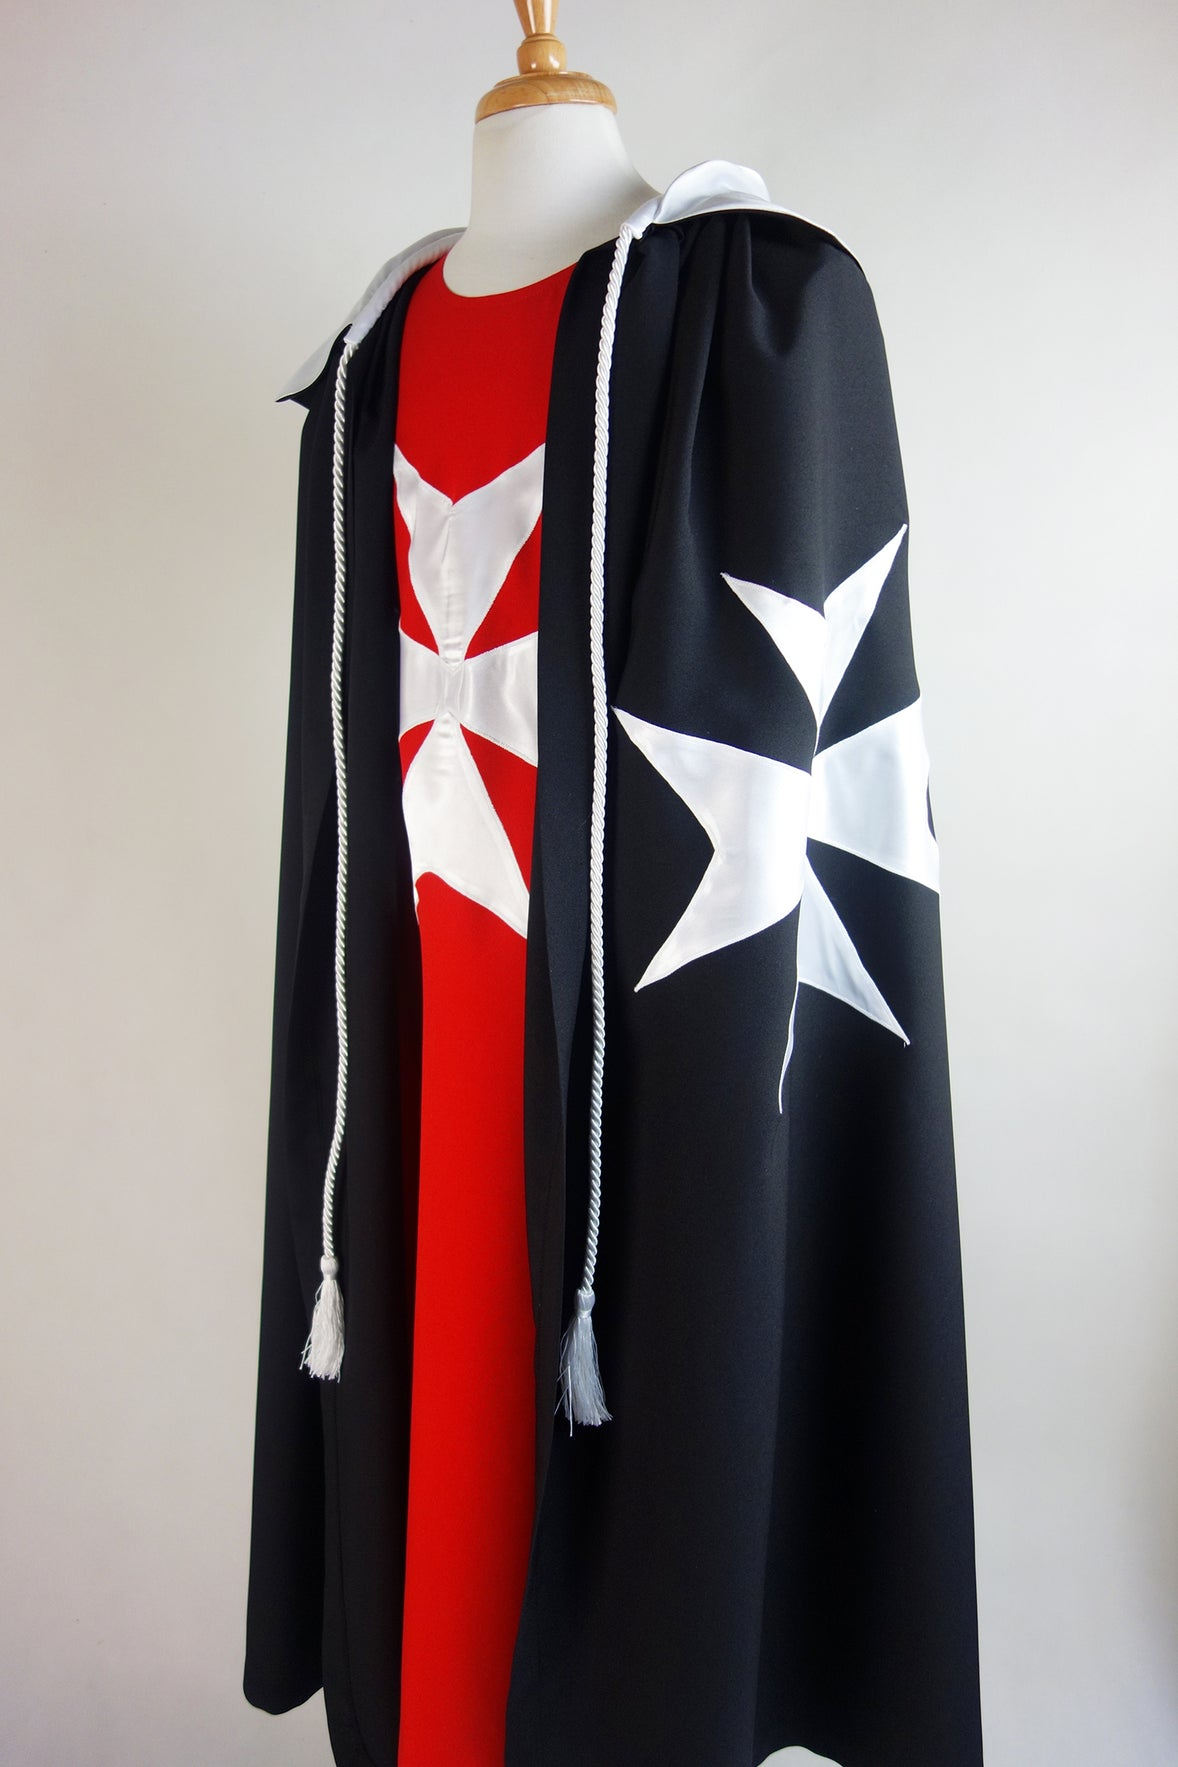 Malta Mantle and Tunic